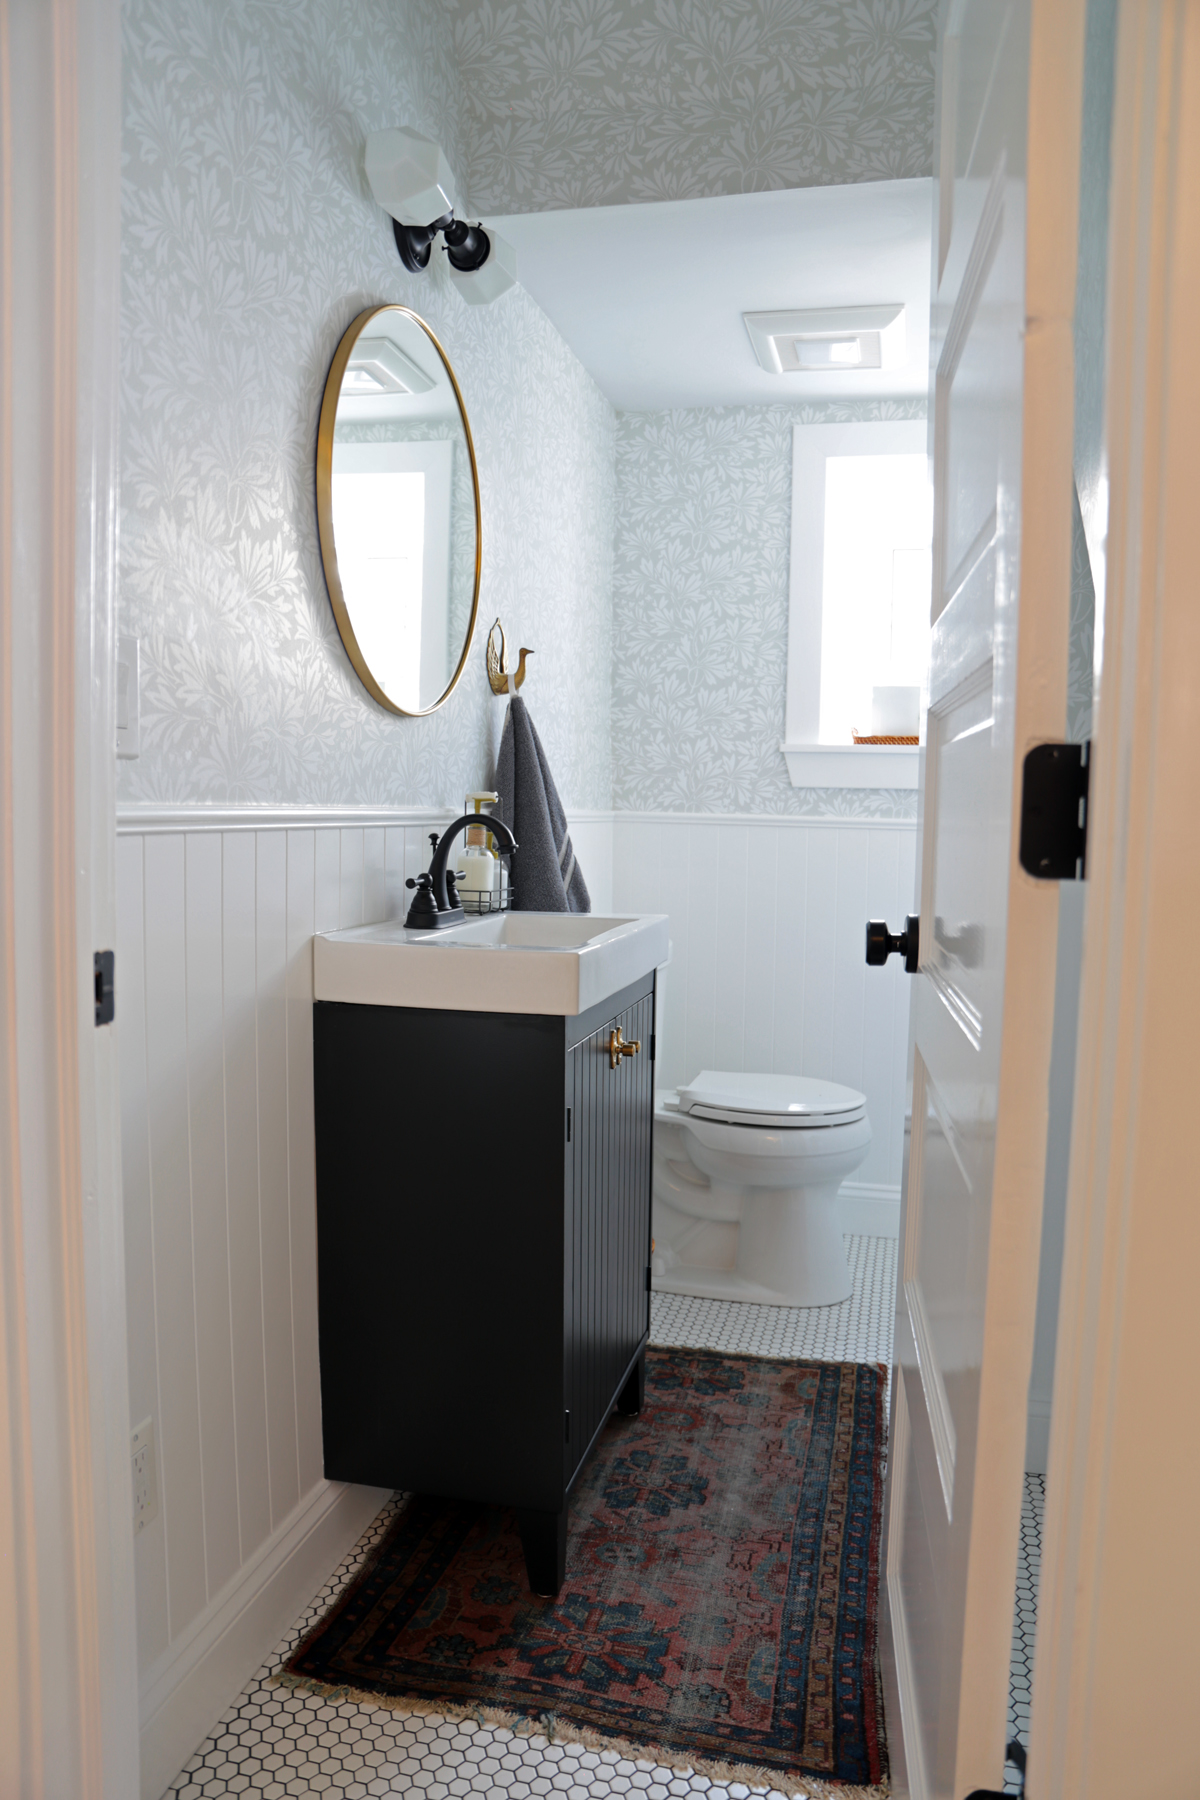 As I Mentioned In My Bathroom Decision Making Post, I Was Unable To Find An  Off The Shelf Vanity That Fit Both My Taste And The Small Space.